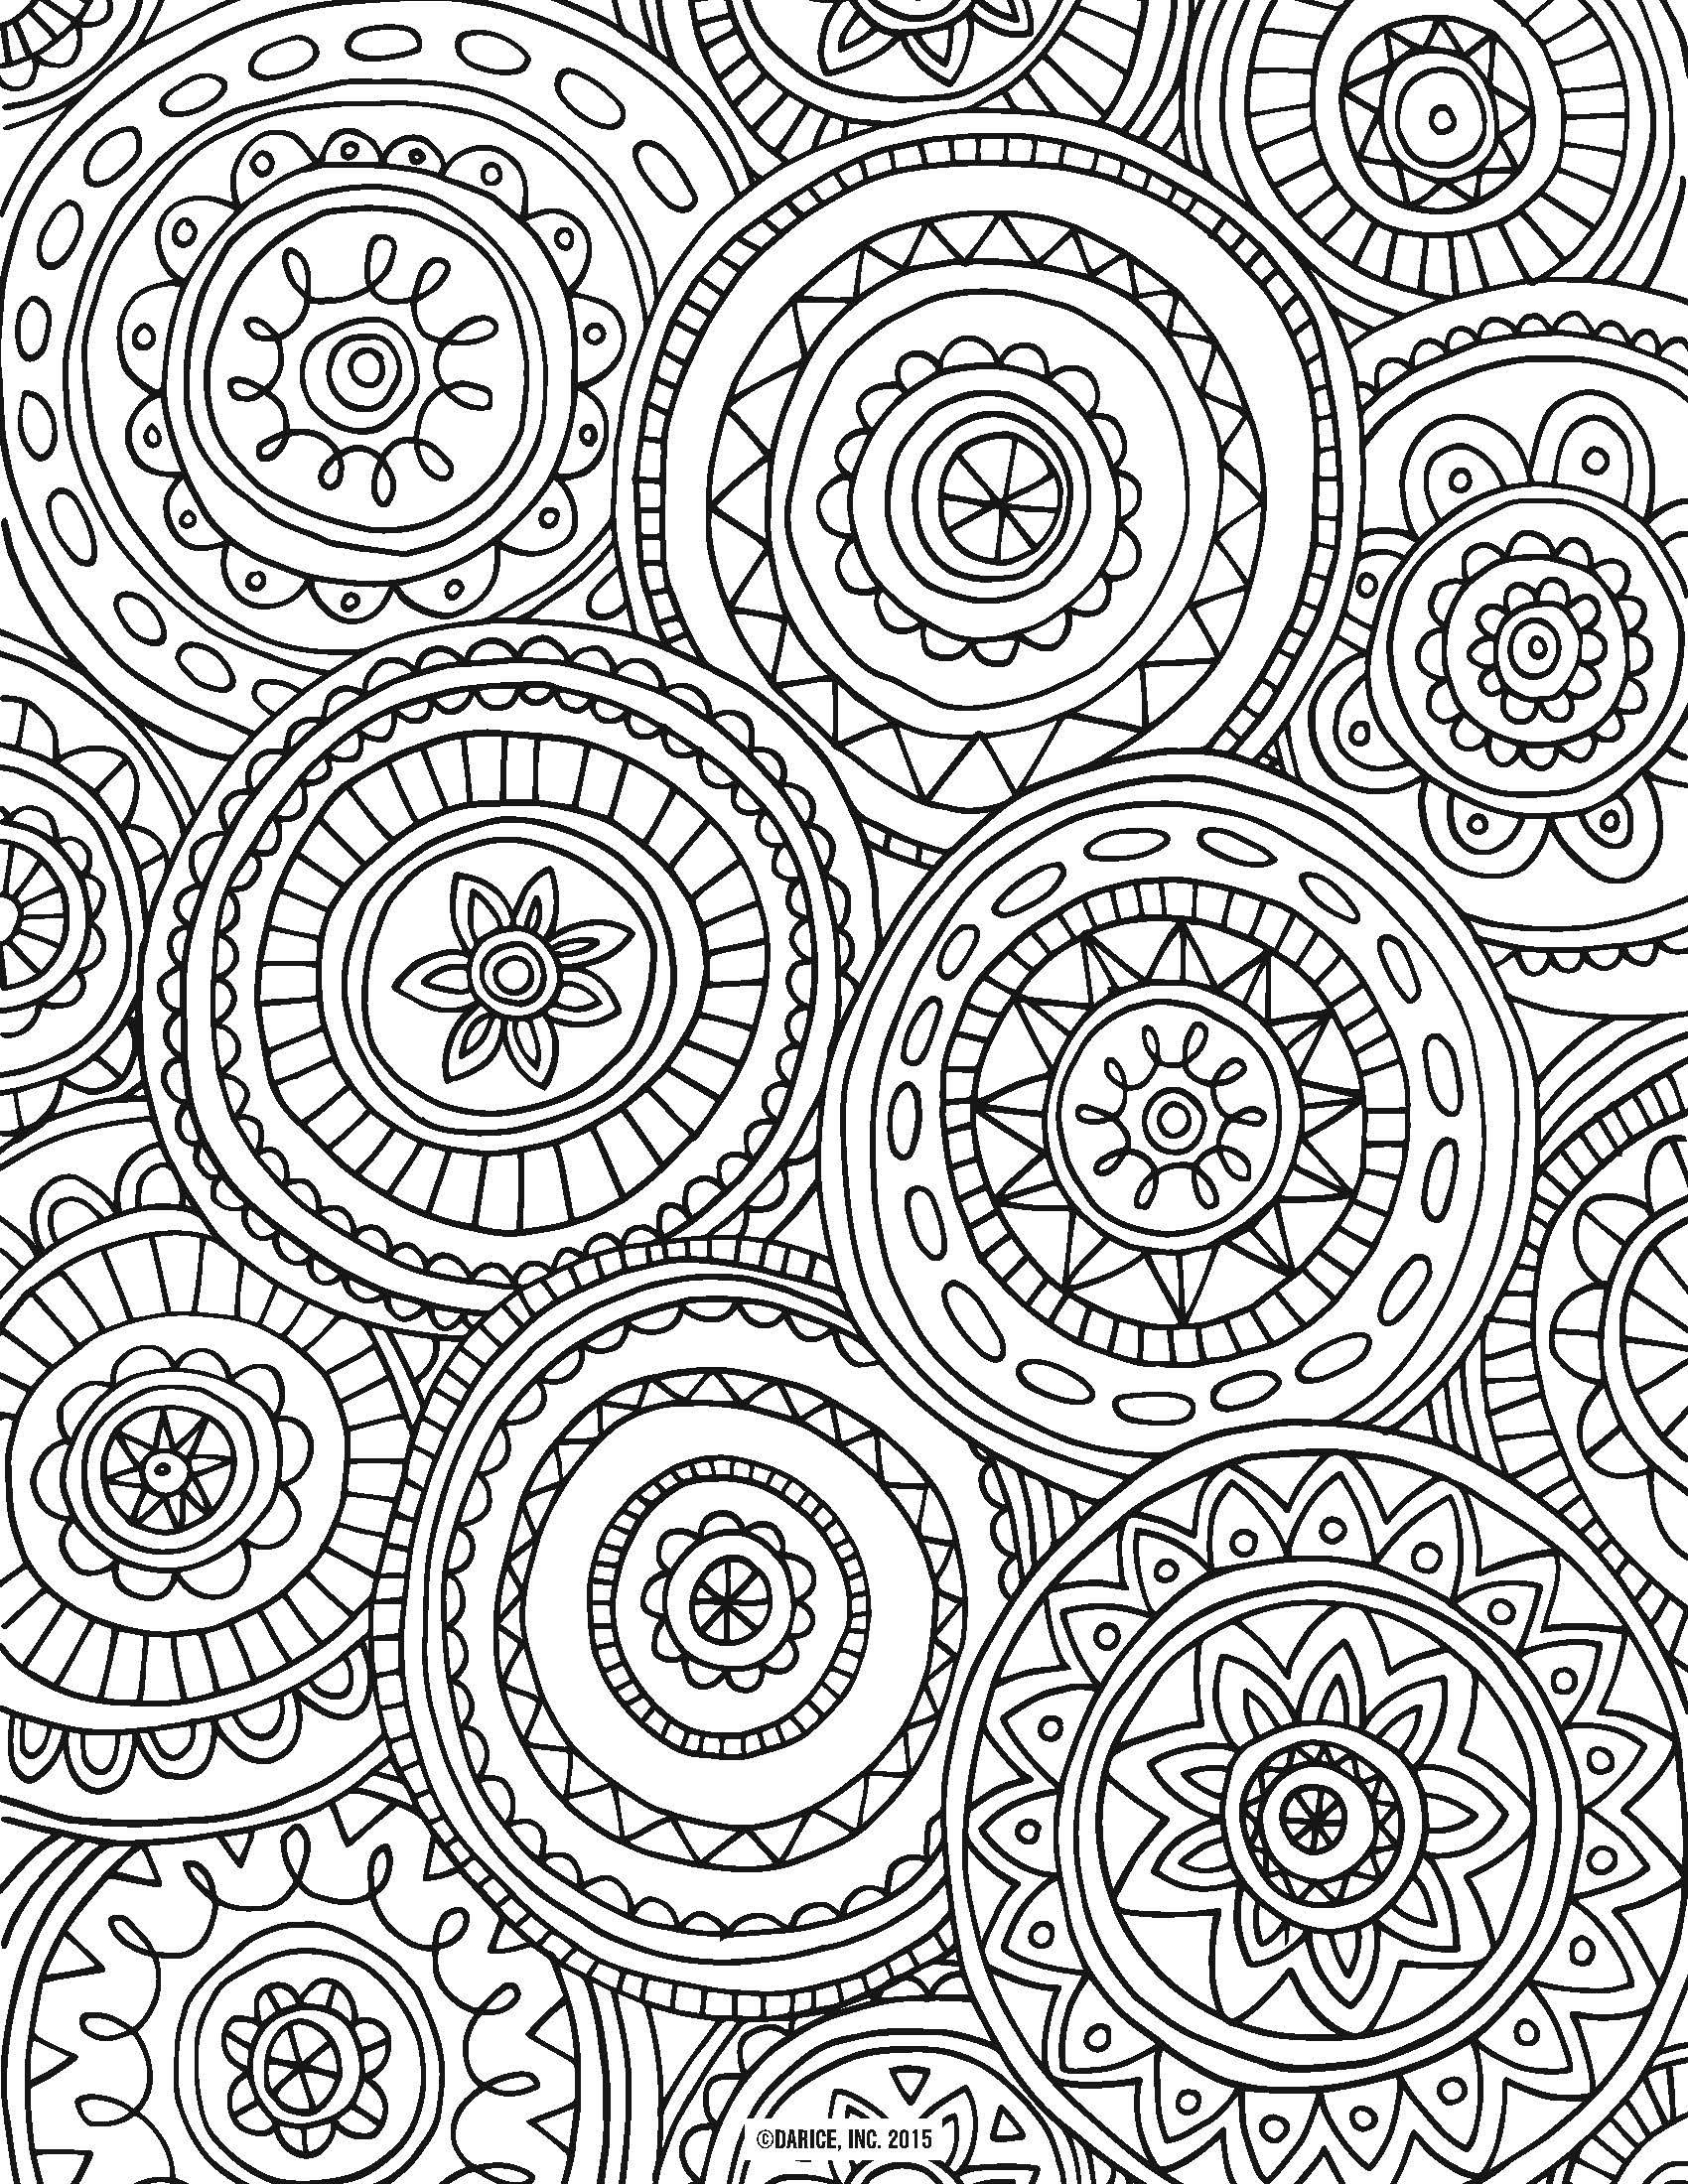 9 Free Printable Adult Coloring Pages Pat Catans Blog – Printable Adult Coloring Page